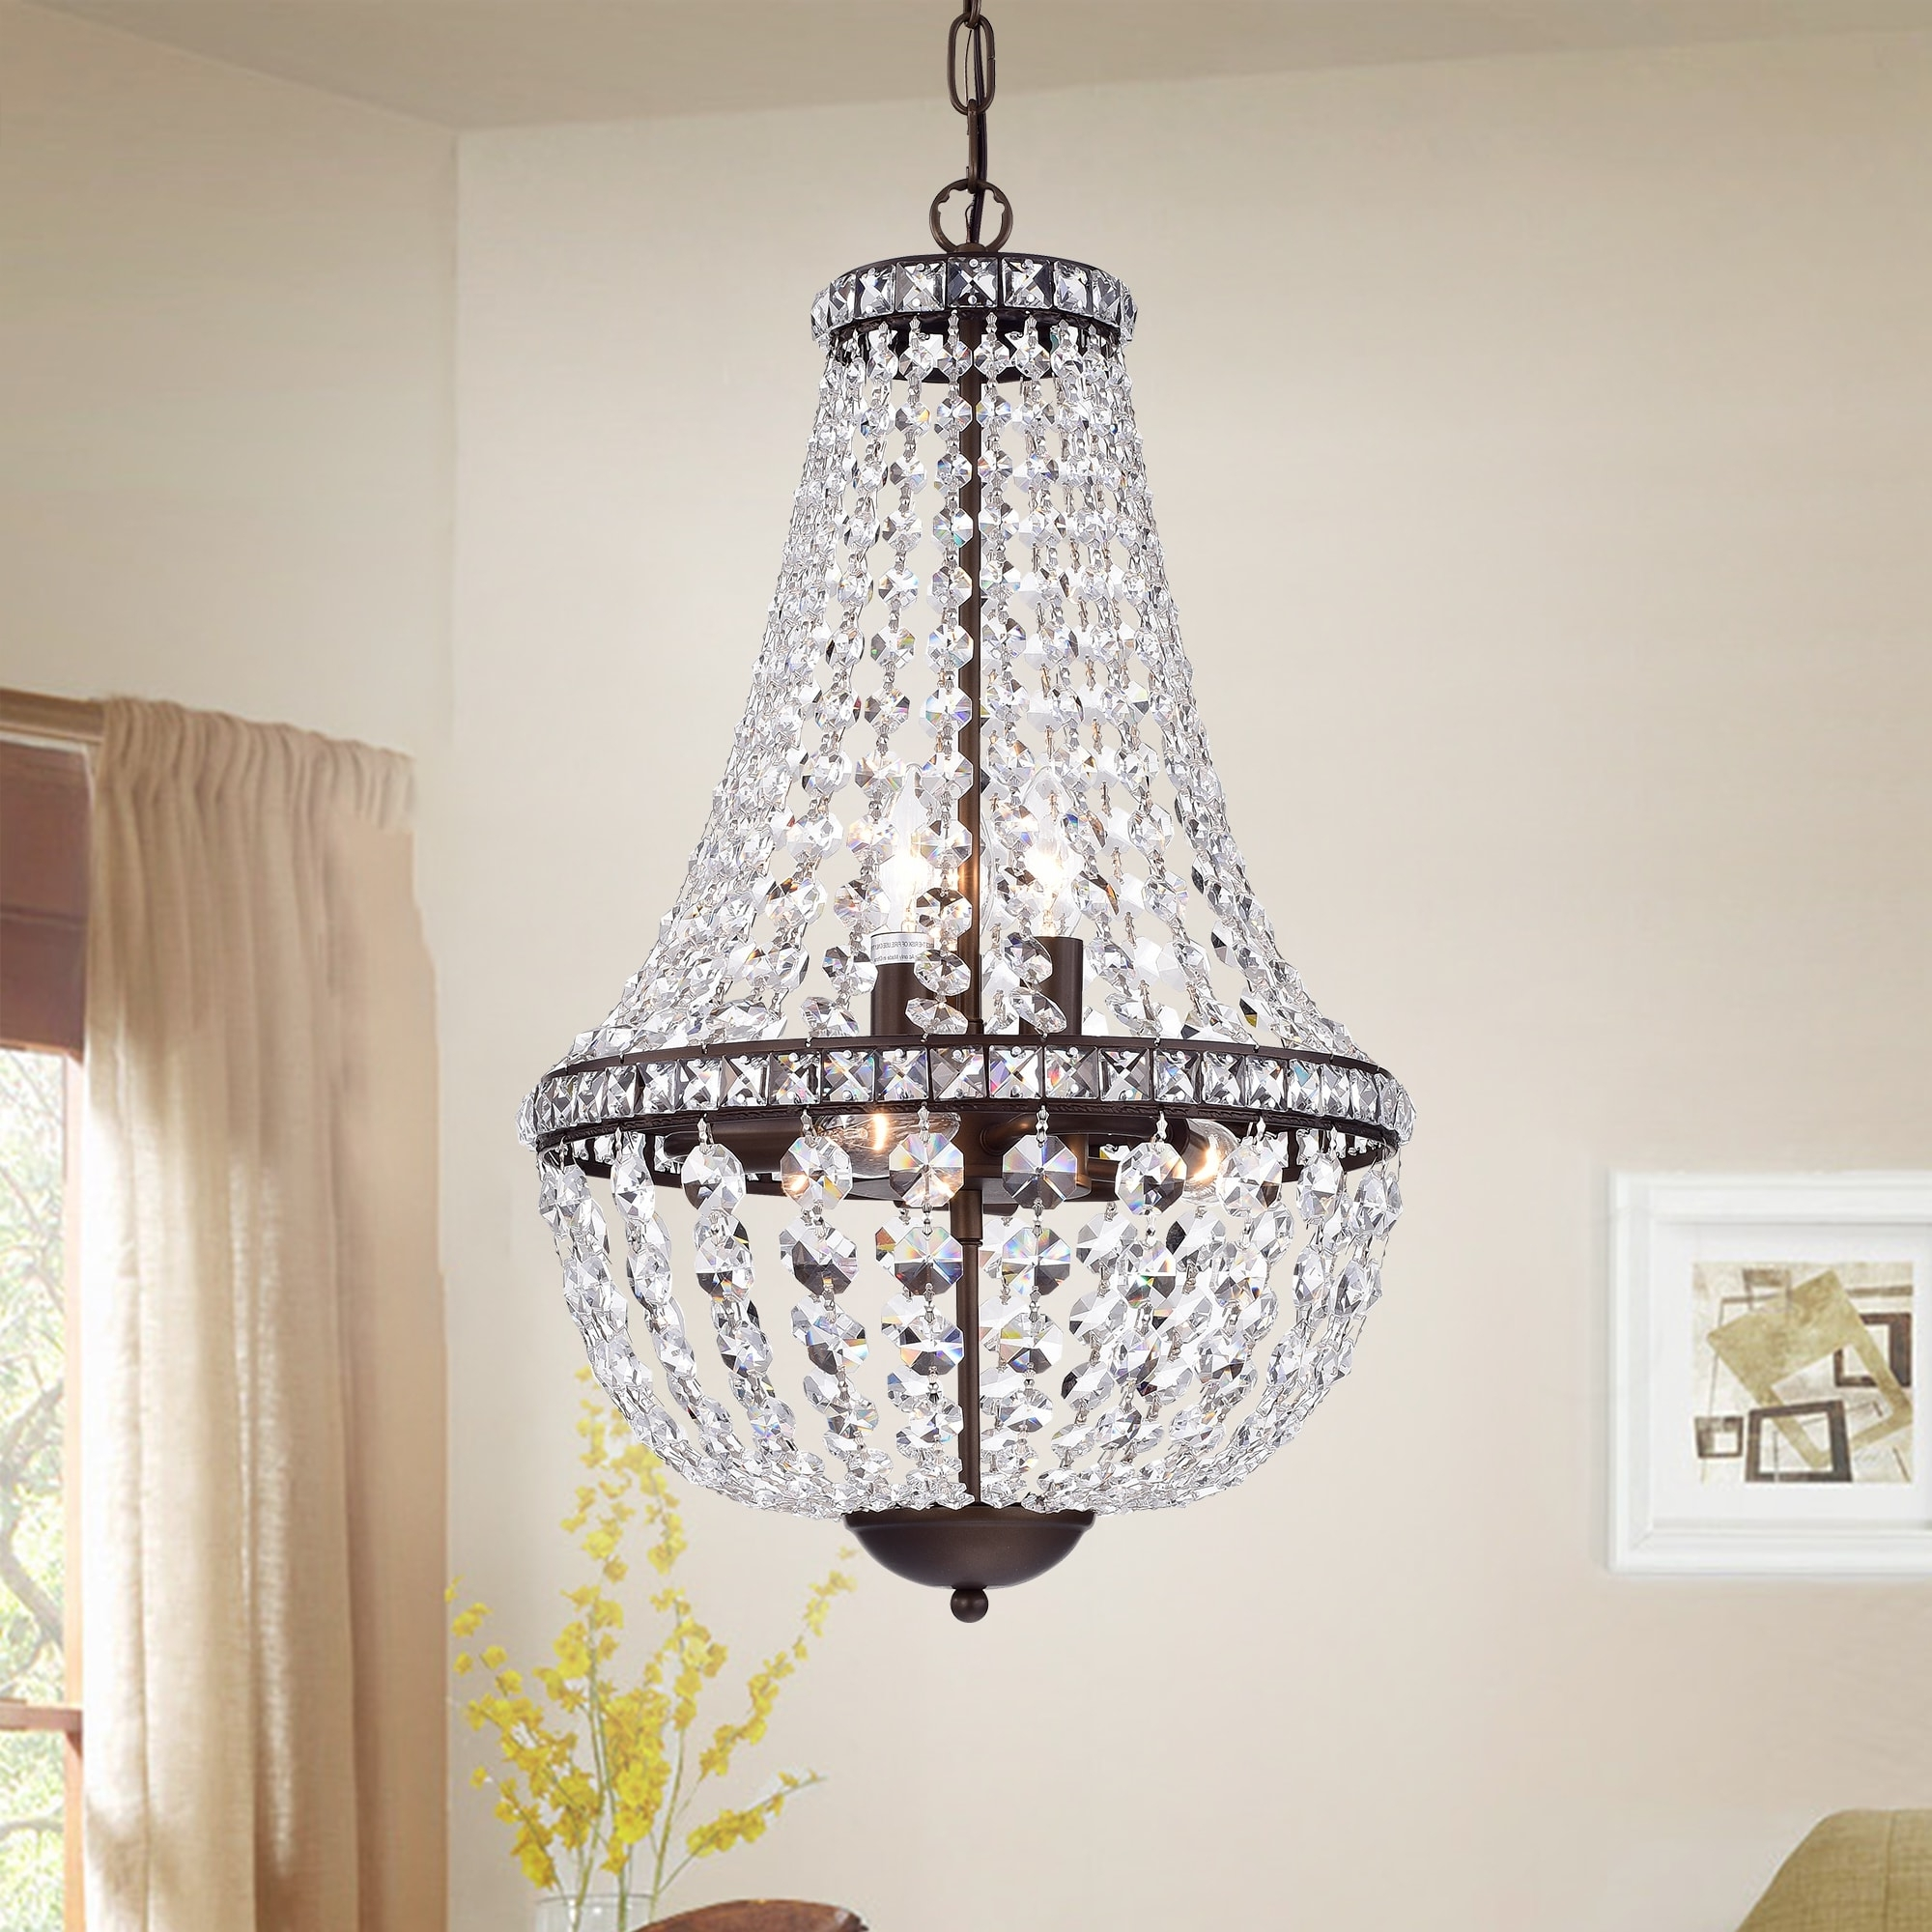 Antique Black Chandelier Pertaining To Most Popular Uanah 6 Light Crystal Antique Black Chandelier – Free Shipping Today (Gallery 7 of 20)